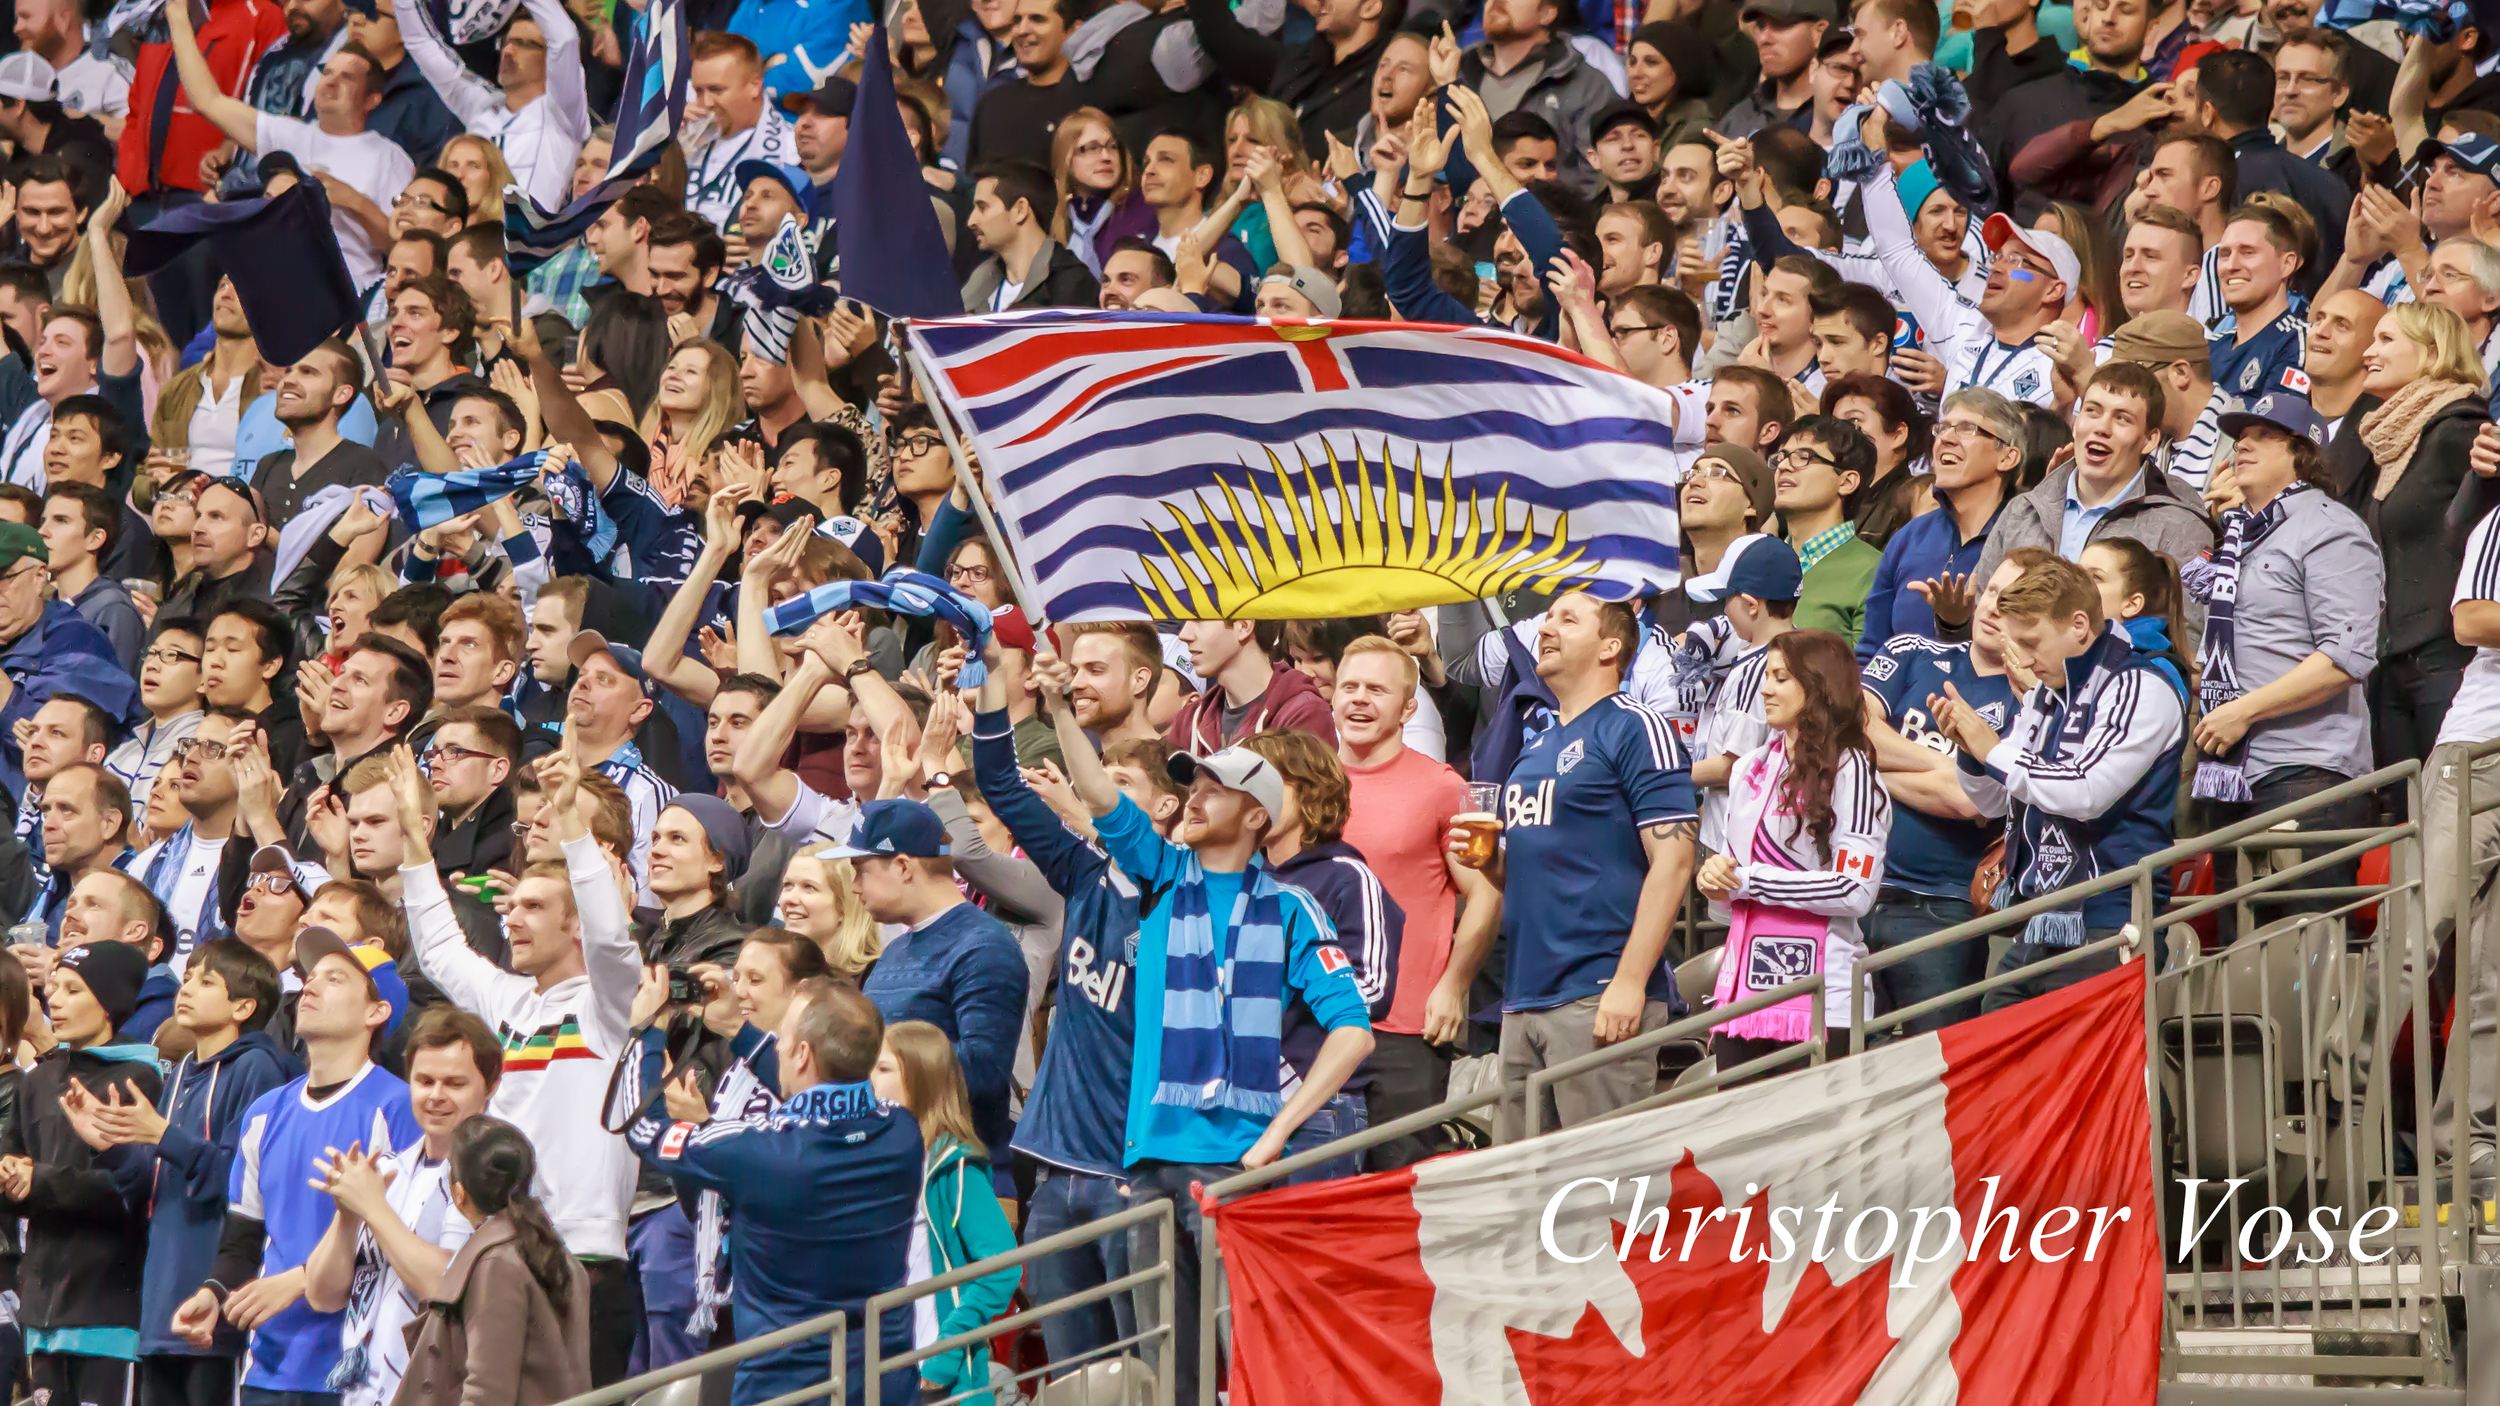 2014-04-19 Georgia Strait Supporters Goal Reaction (Manneh).jpg